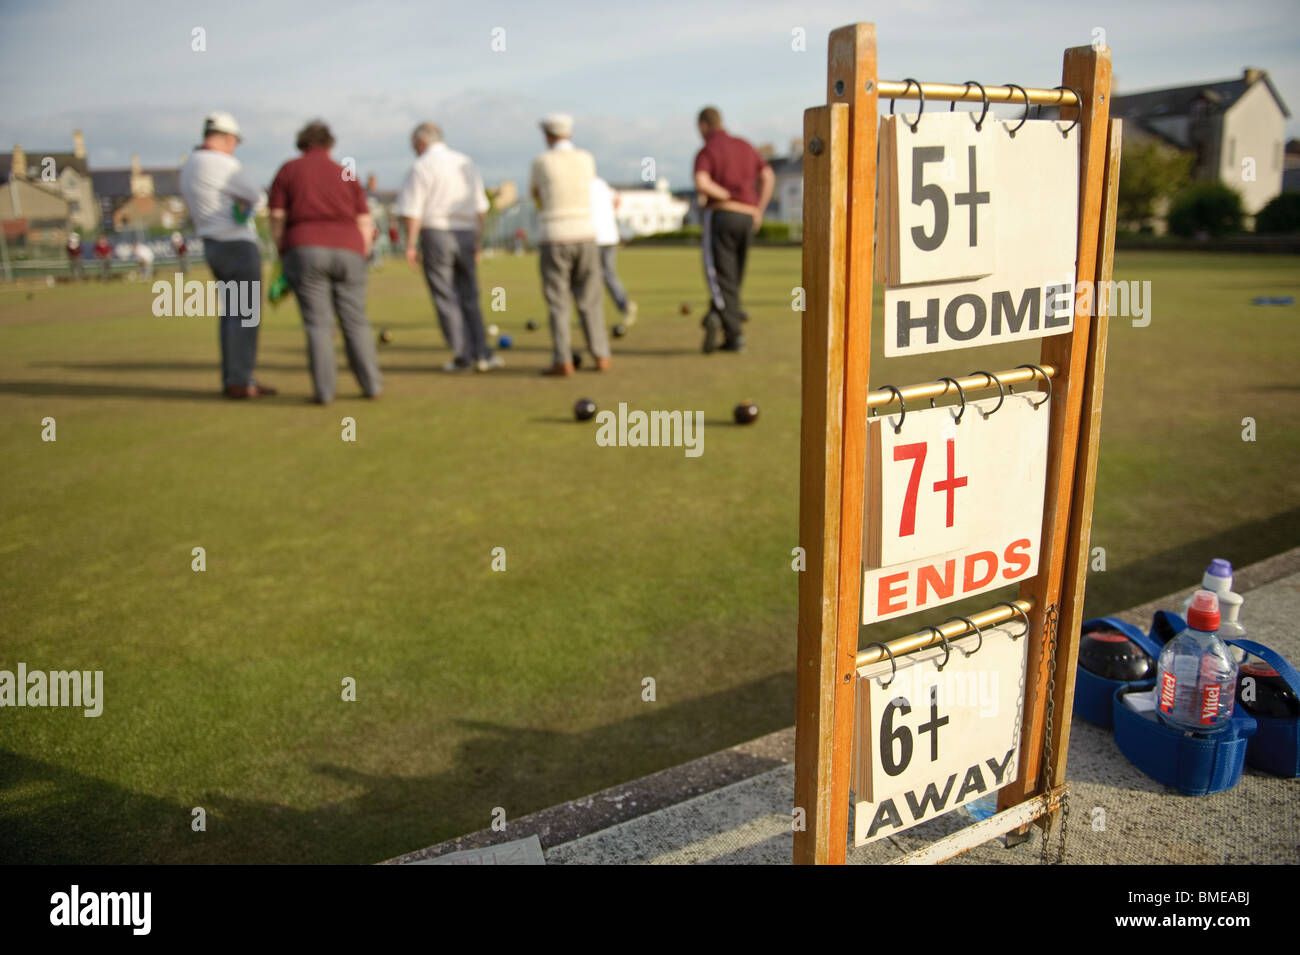 rear view of a group of middle aged men playing a game of lawn green bowls on a summer evening, Aberystwyth Wales - Stock Image